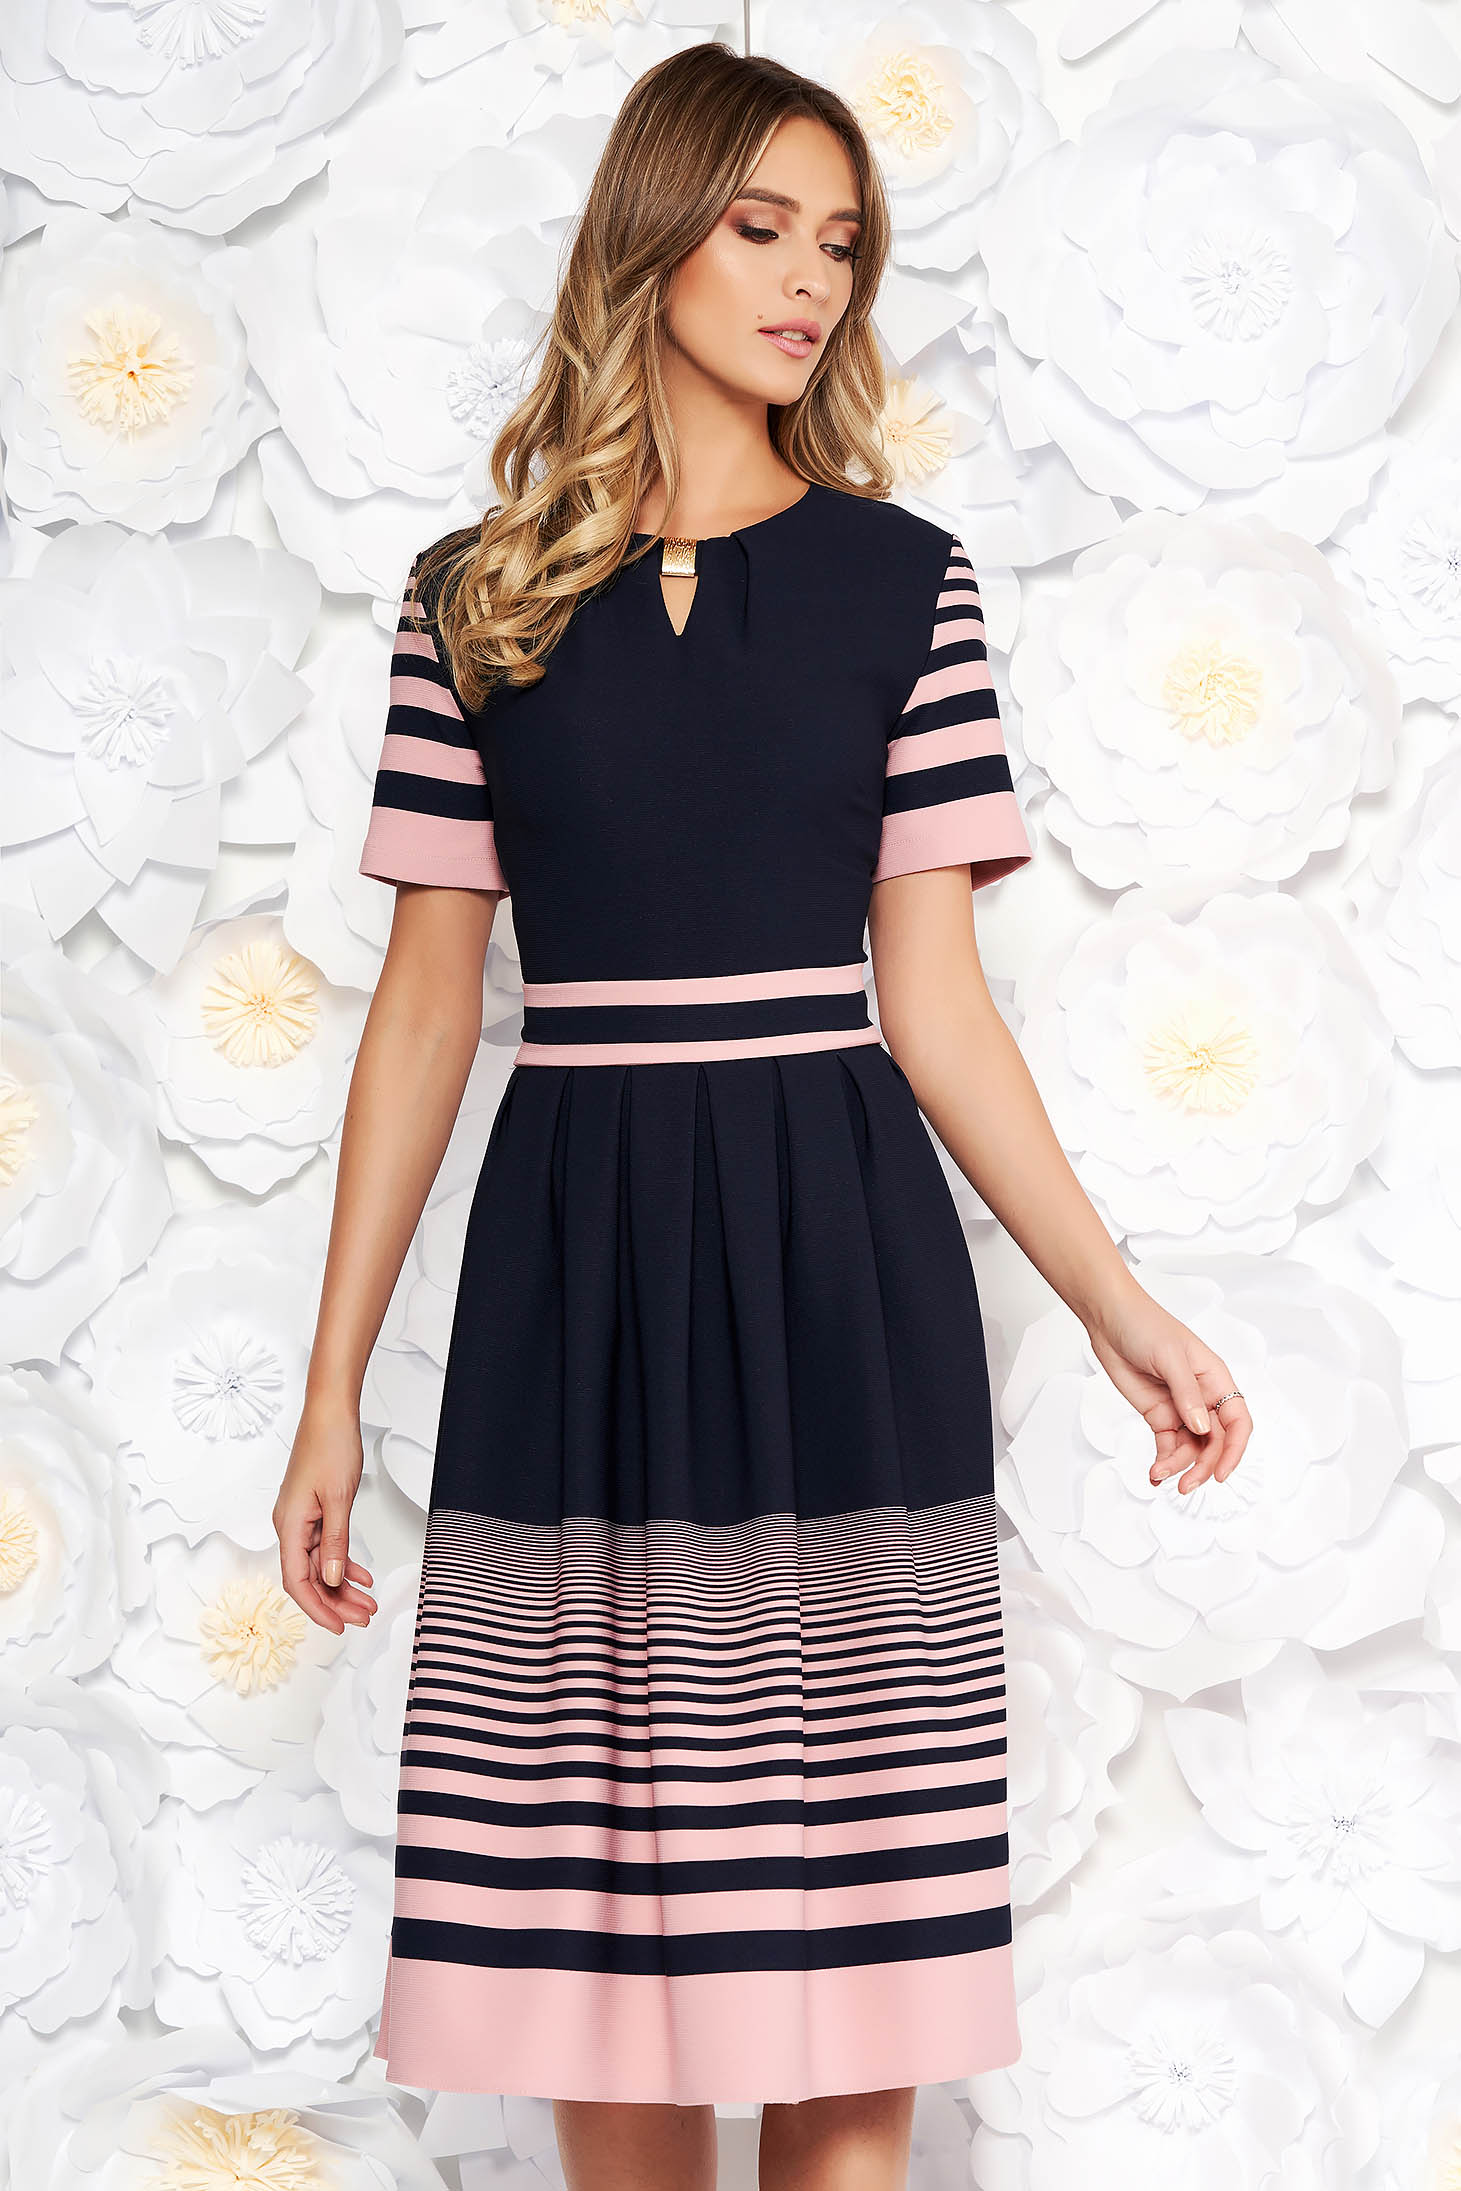 Darkblue daily midi cloche dress thin fabric from elastic fabric accessorized with tied waistband